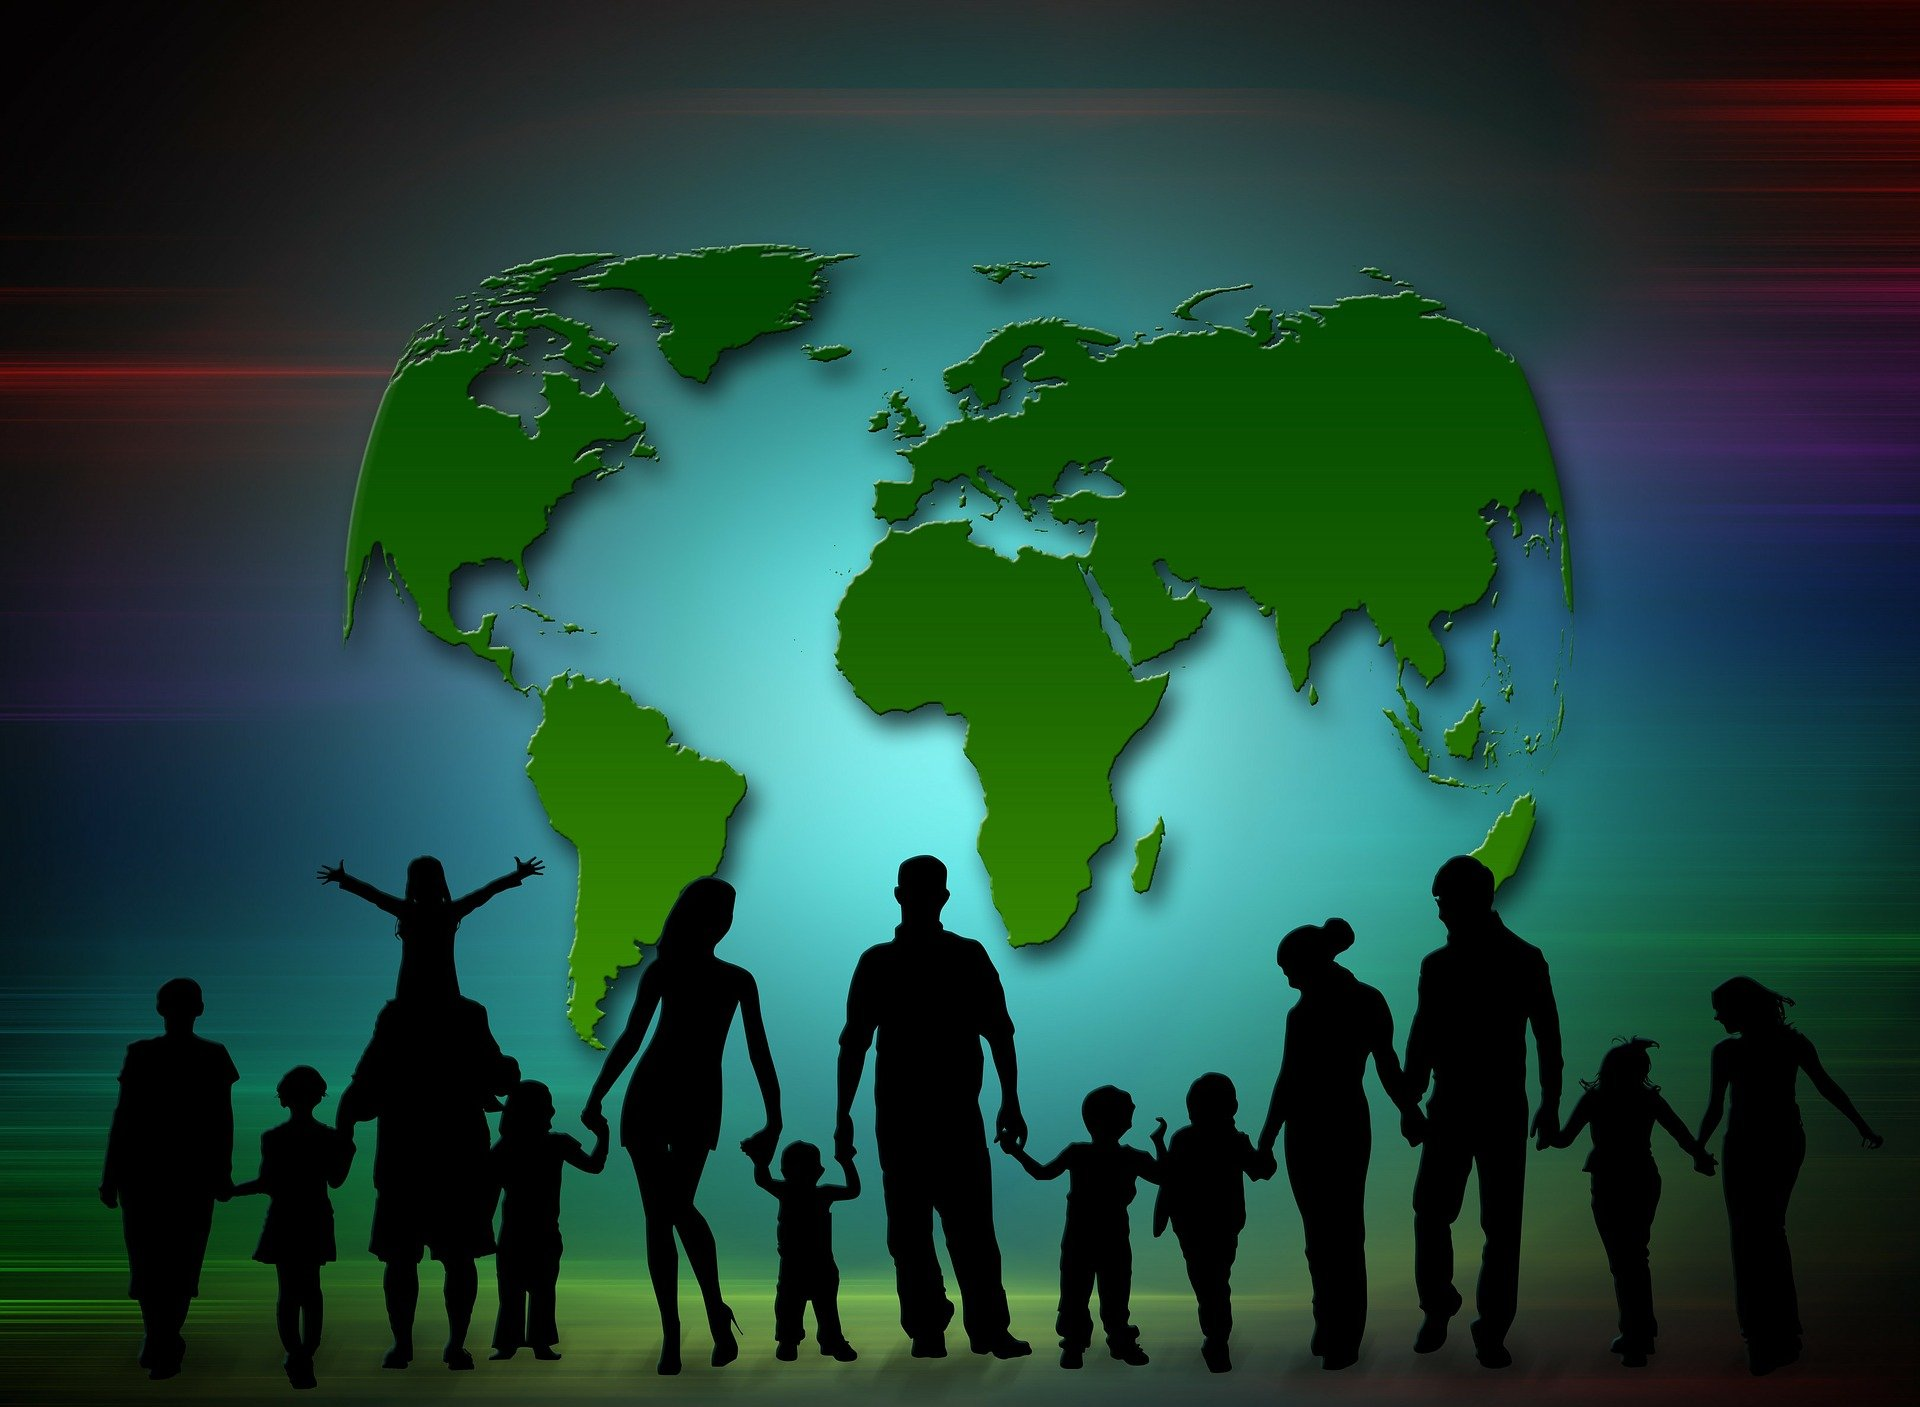 Illustration of families coming together worldwide. | Source: Pixabay.